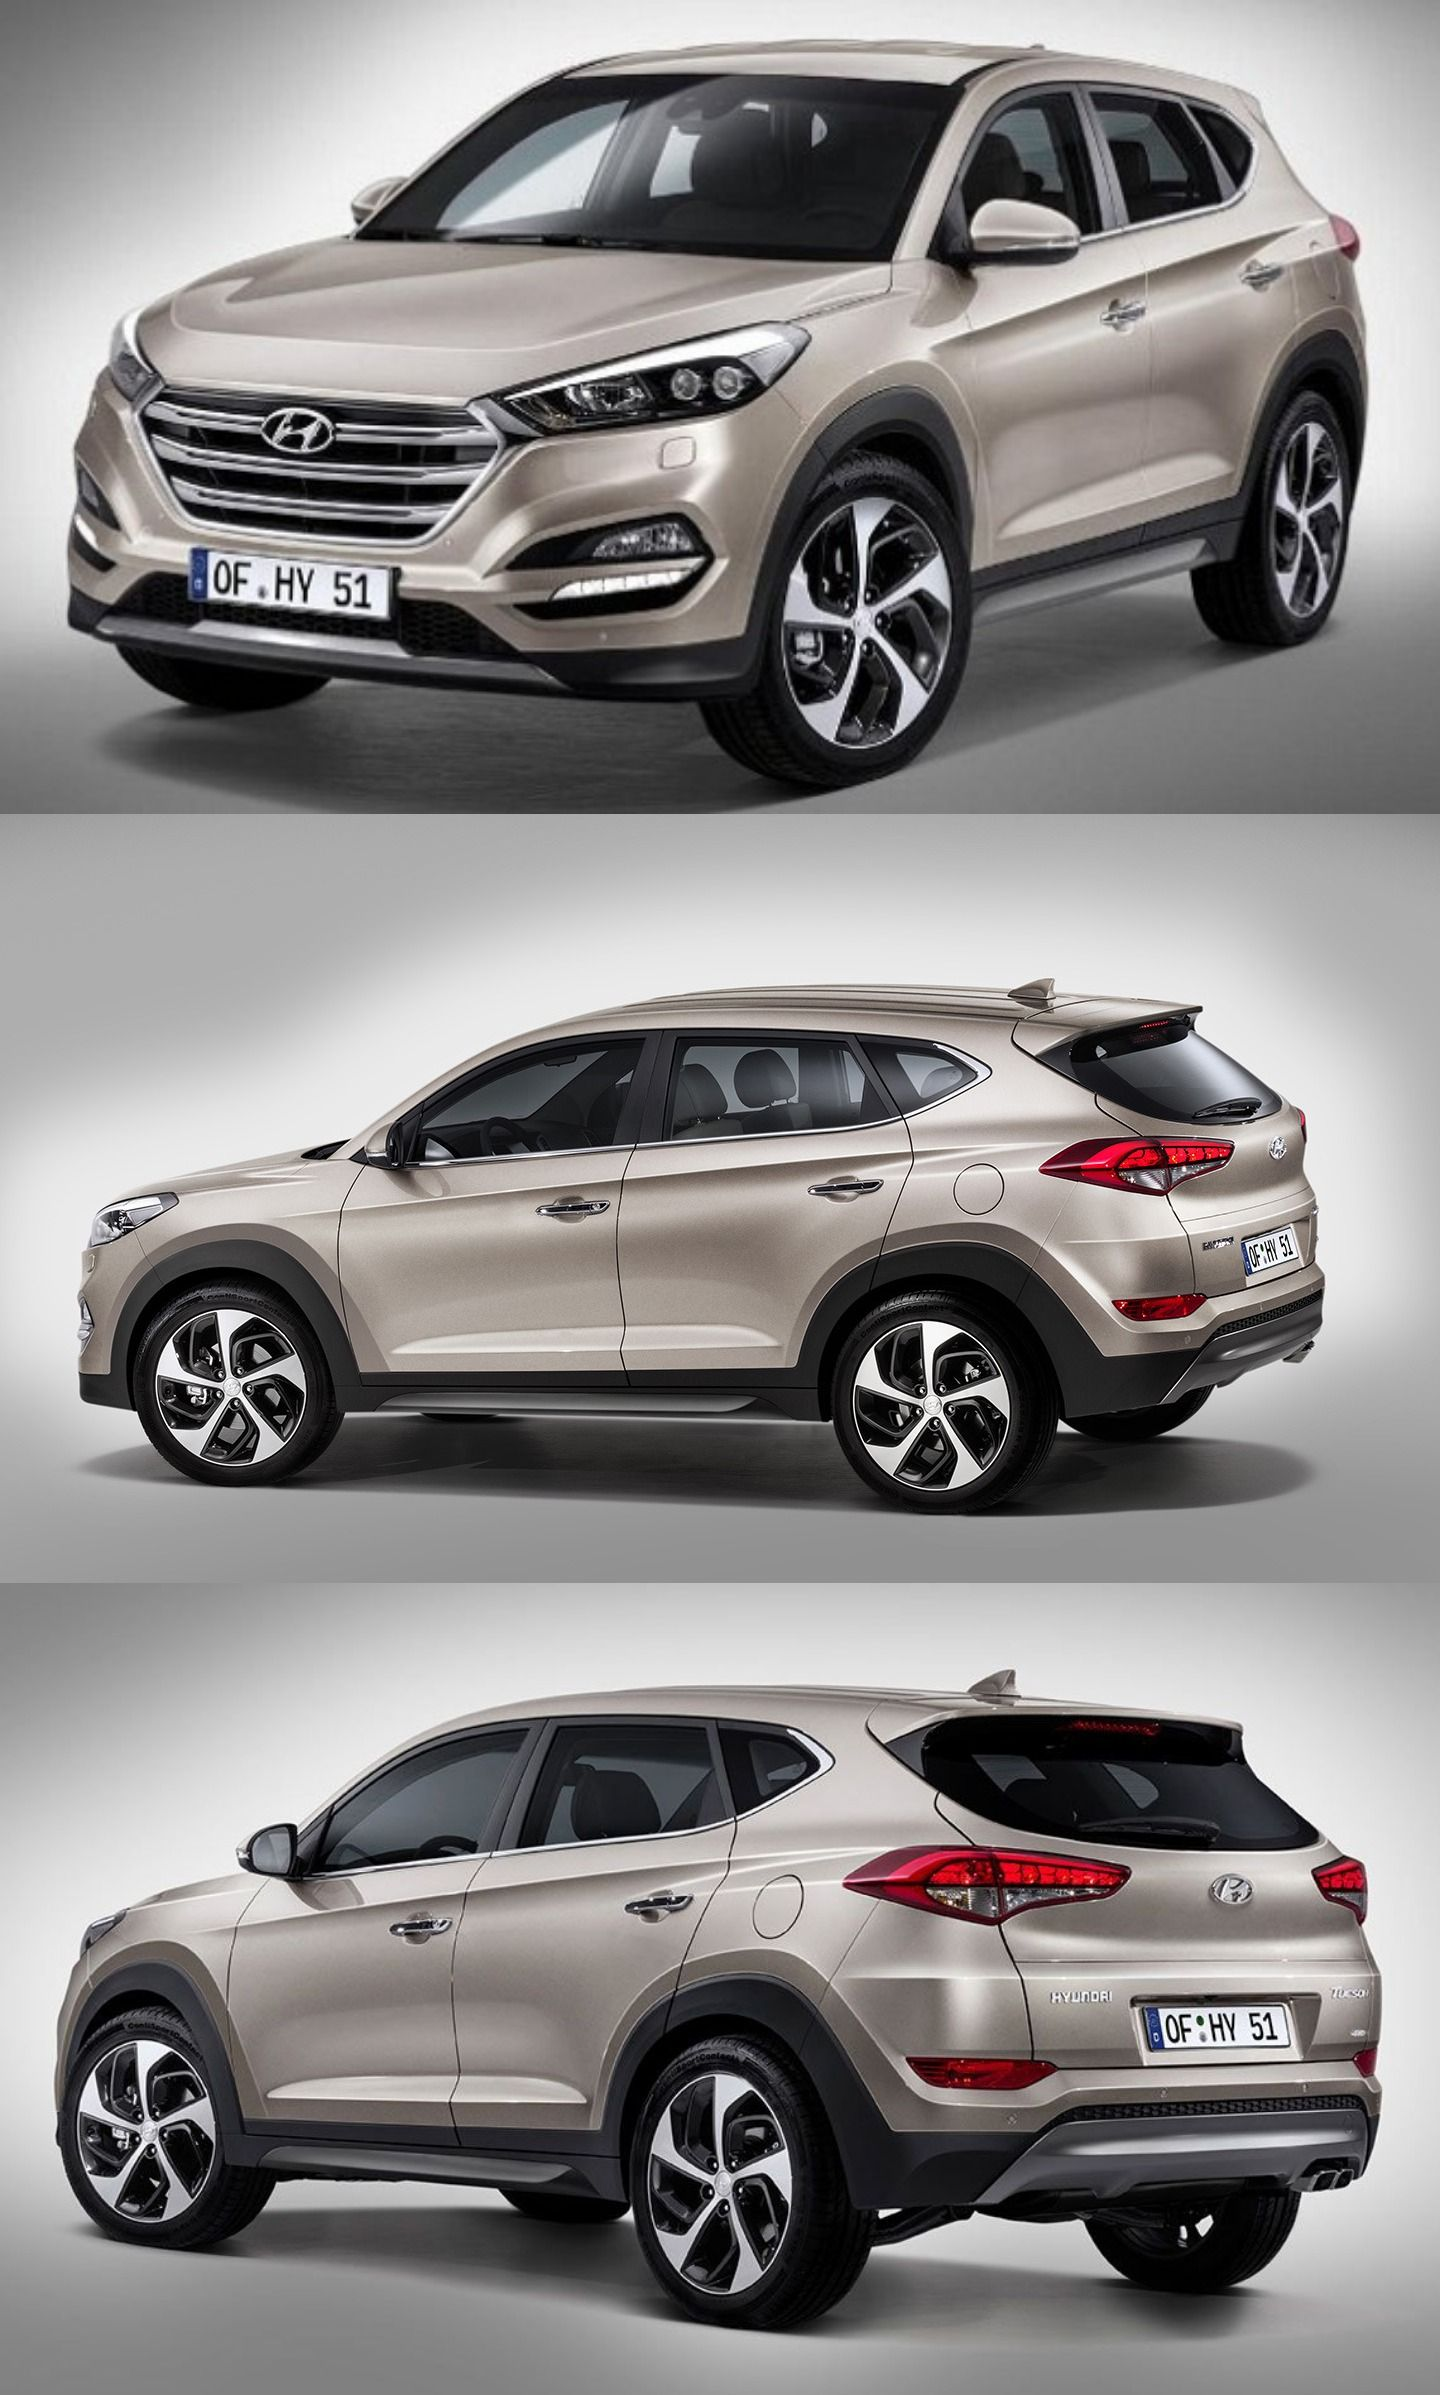 new hyundai tucson unveiled in the uk automobile car camionetas que me gustan pinterest. Black Bedroom Furniture Sets. Home Design Ideas